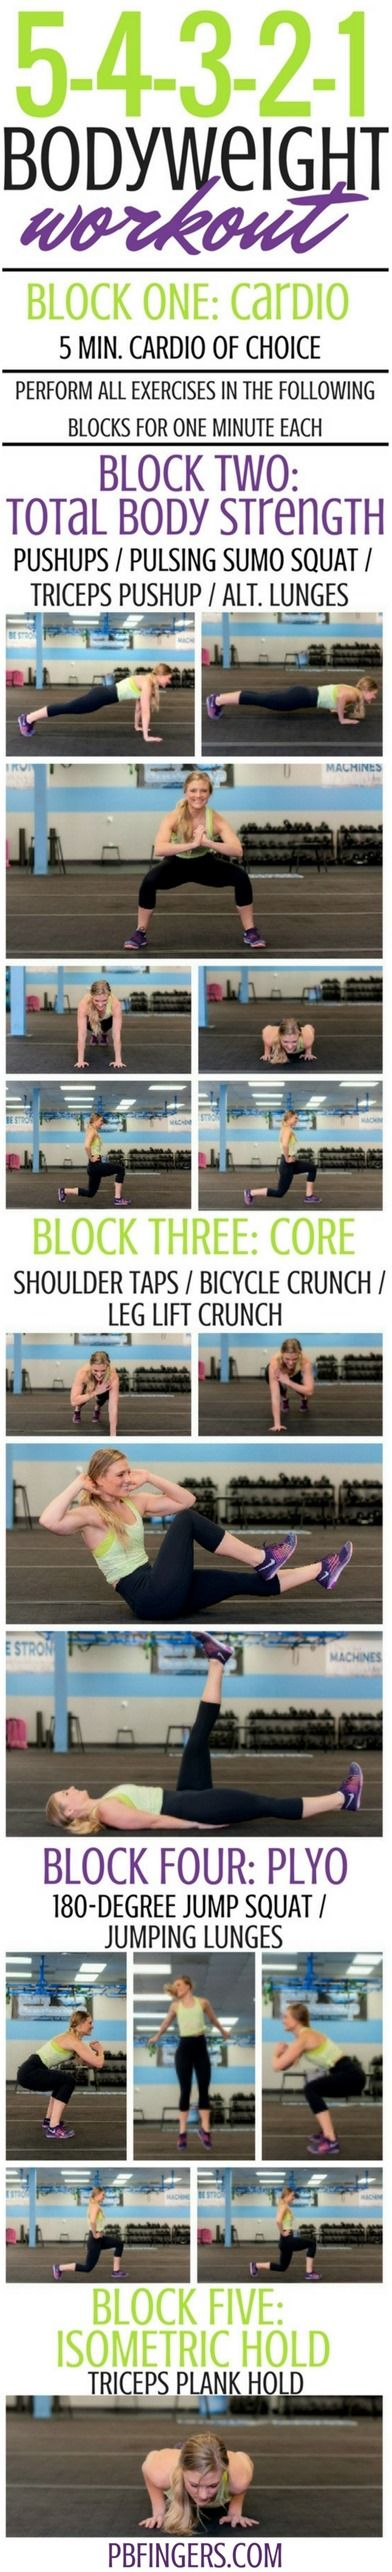 5-4-3-2-1 Bodyweight Workout http://www.pbfingers.com/decreasing-reps-bodyweight-workout-2/ A challenging total body workout that keeps things moving! No equipment required. Perfect travel or at home workout!